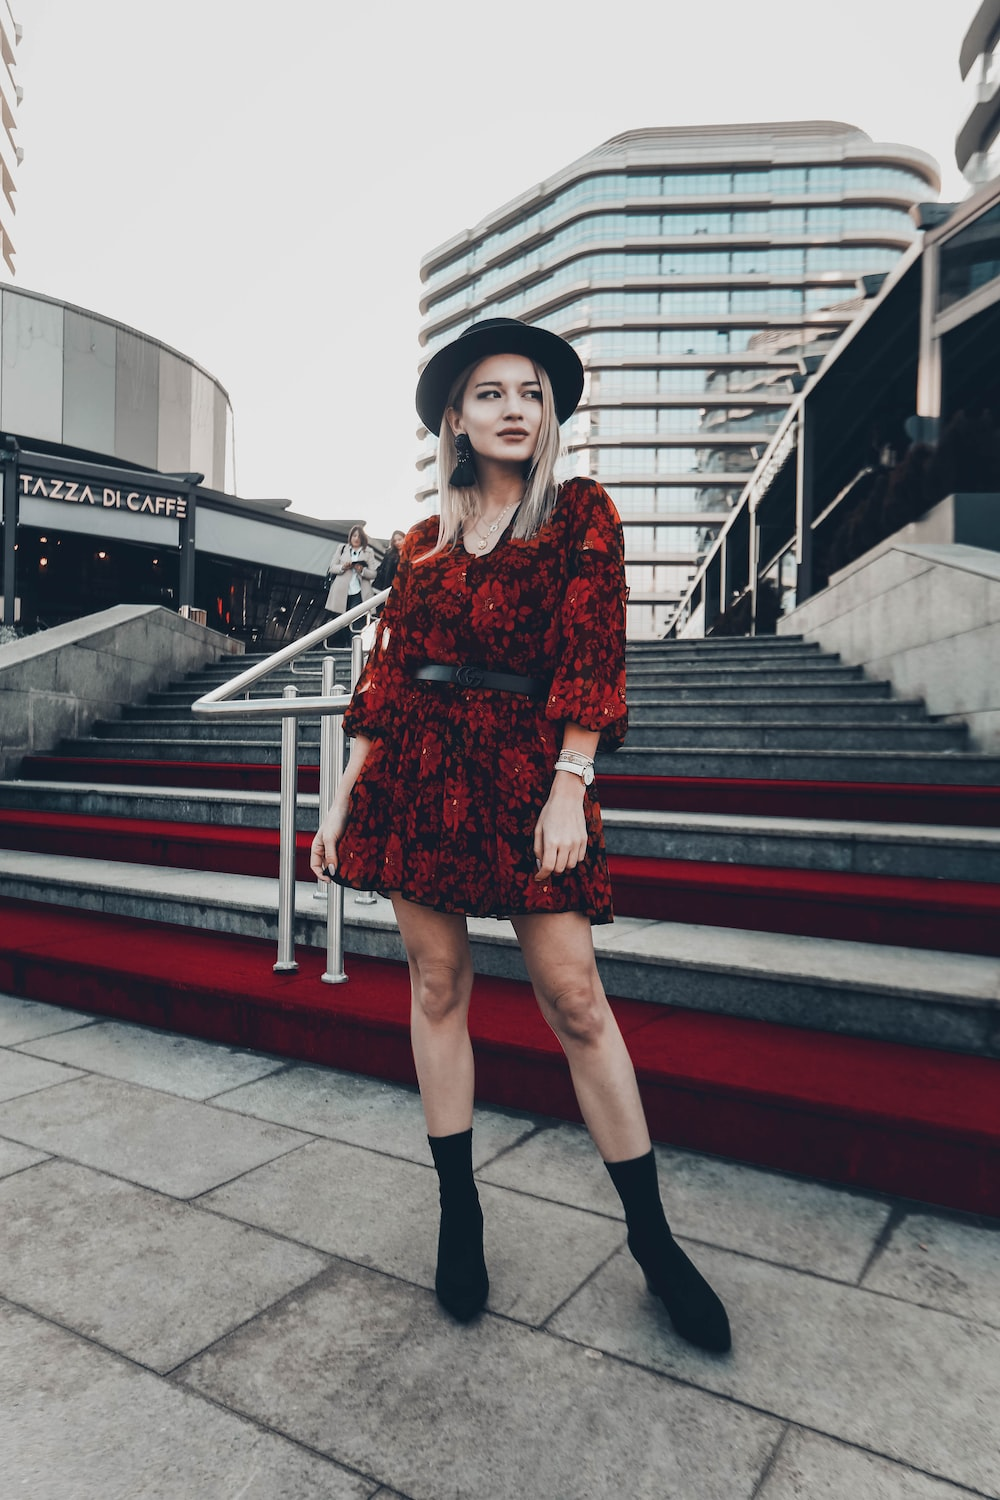 woman in red and black floral dress standing near stairs